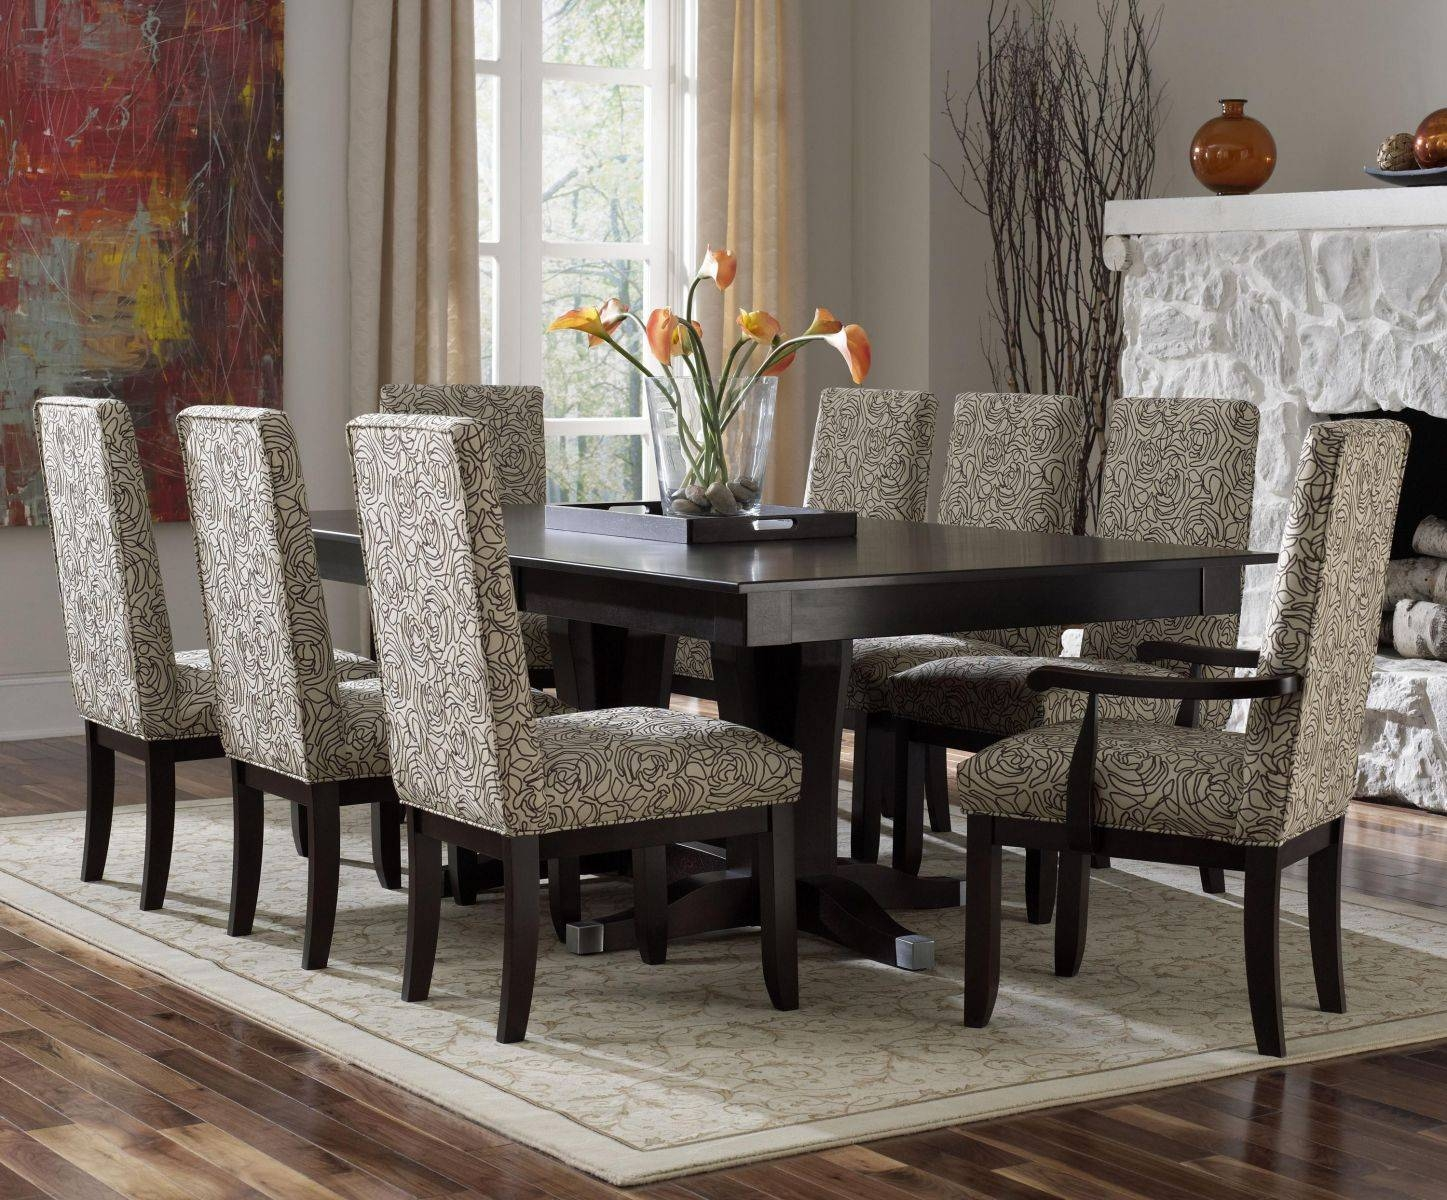 Purple Leather Backrest Chair Stainless Legs Elegant Violet High in Dining Room Sets With Sideboards (Image 13 of 15)